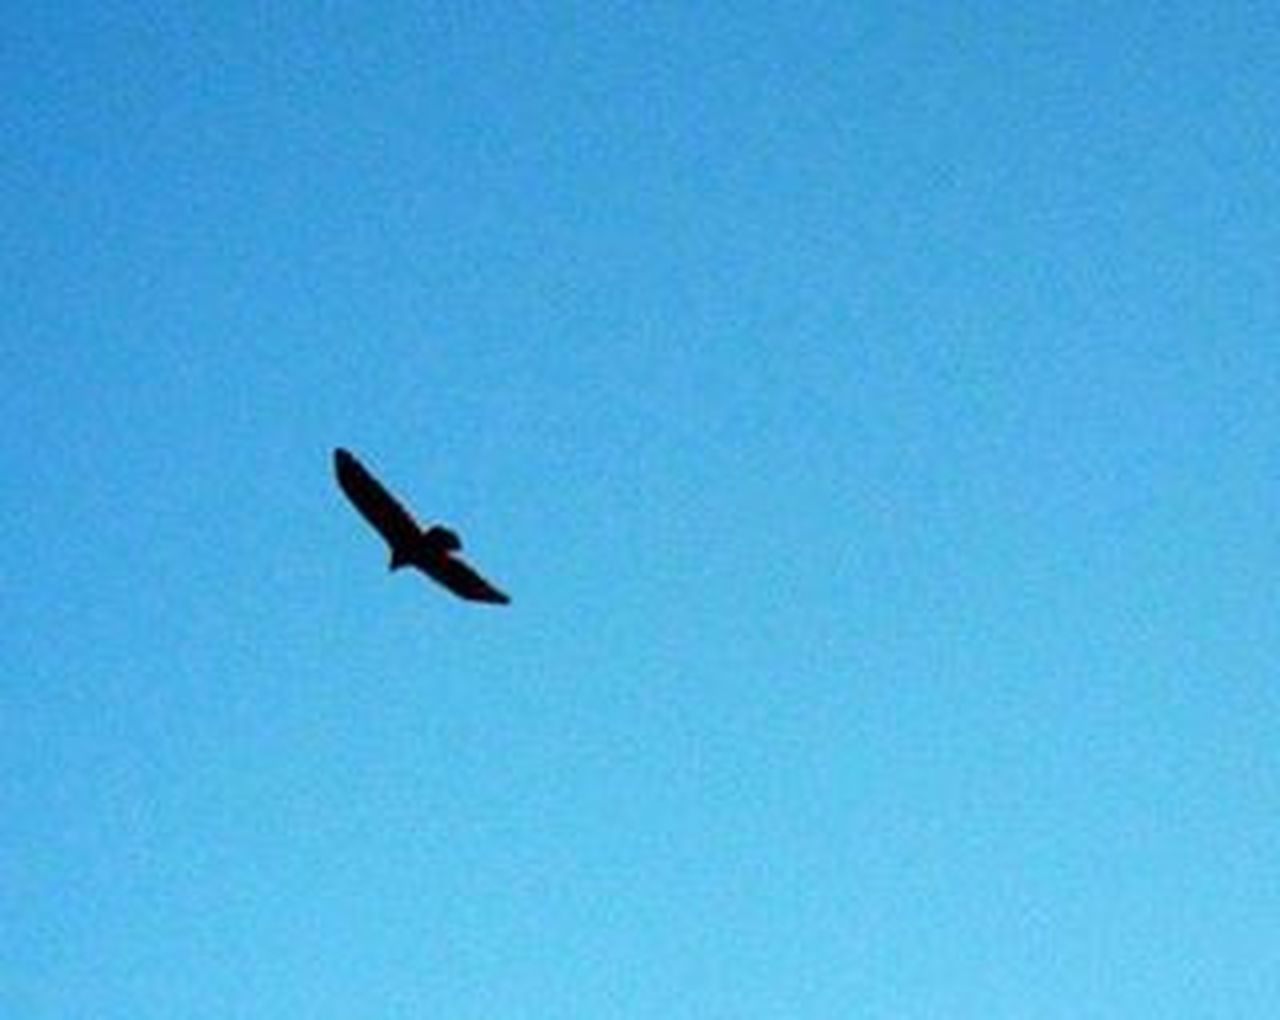 bird, one animal, animals in the wild, flying, animal wildlife, clear sky, animal themes, blue, day, no people, nature, low angle view, mid-air, outdoors, spread wings, sky, raven - bird, bird of prey